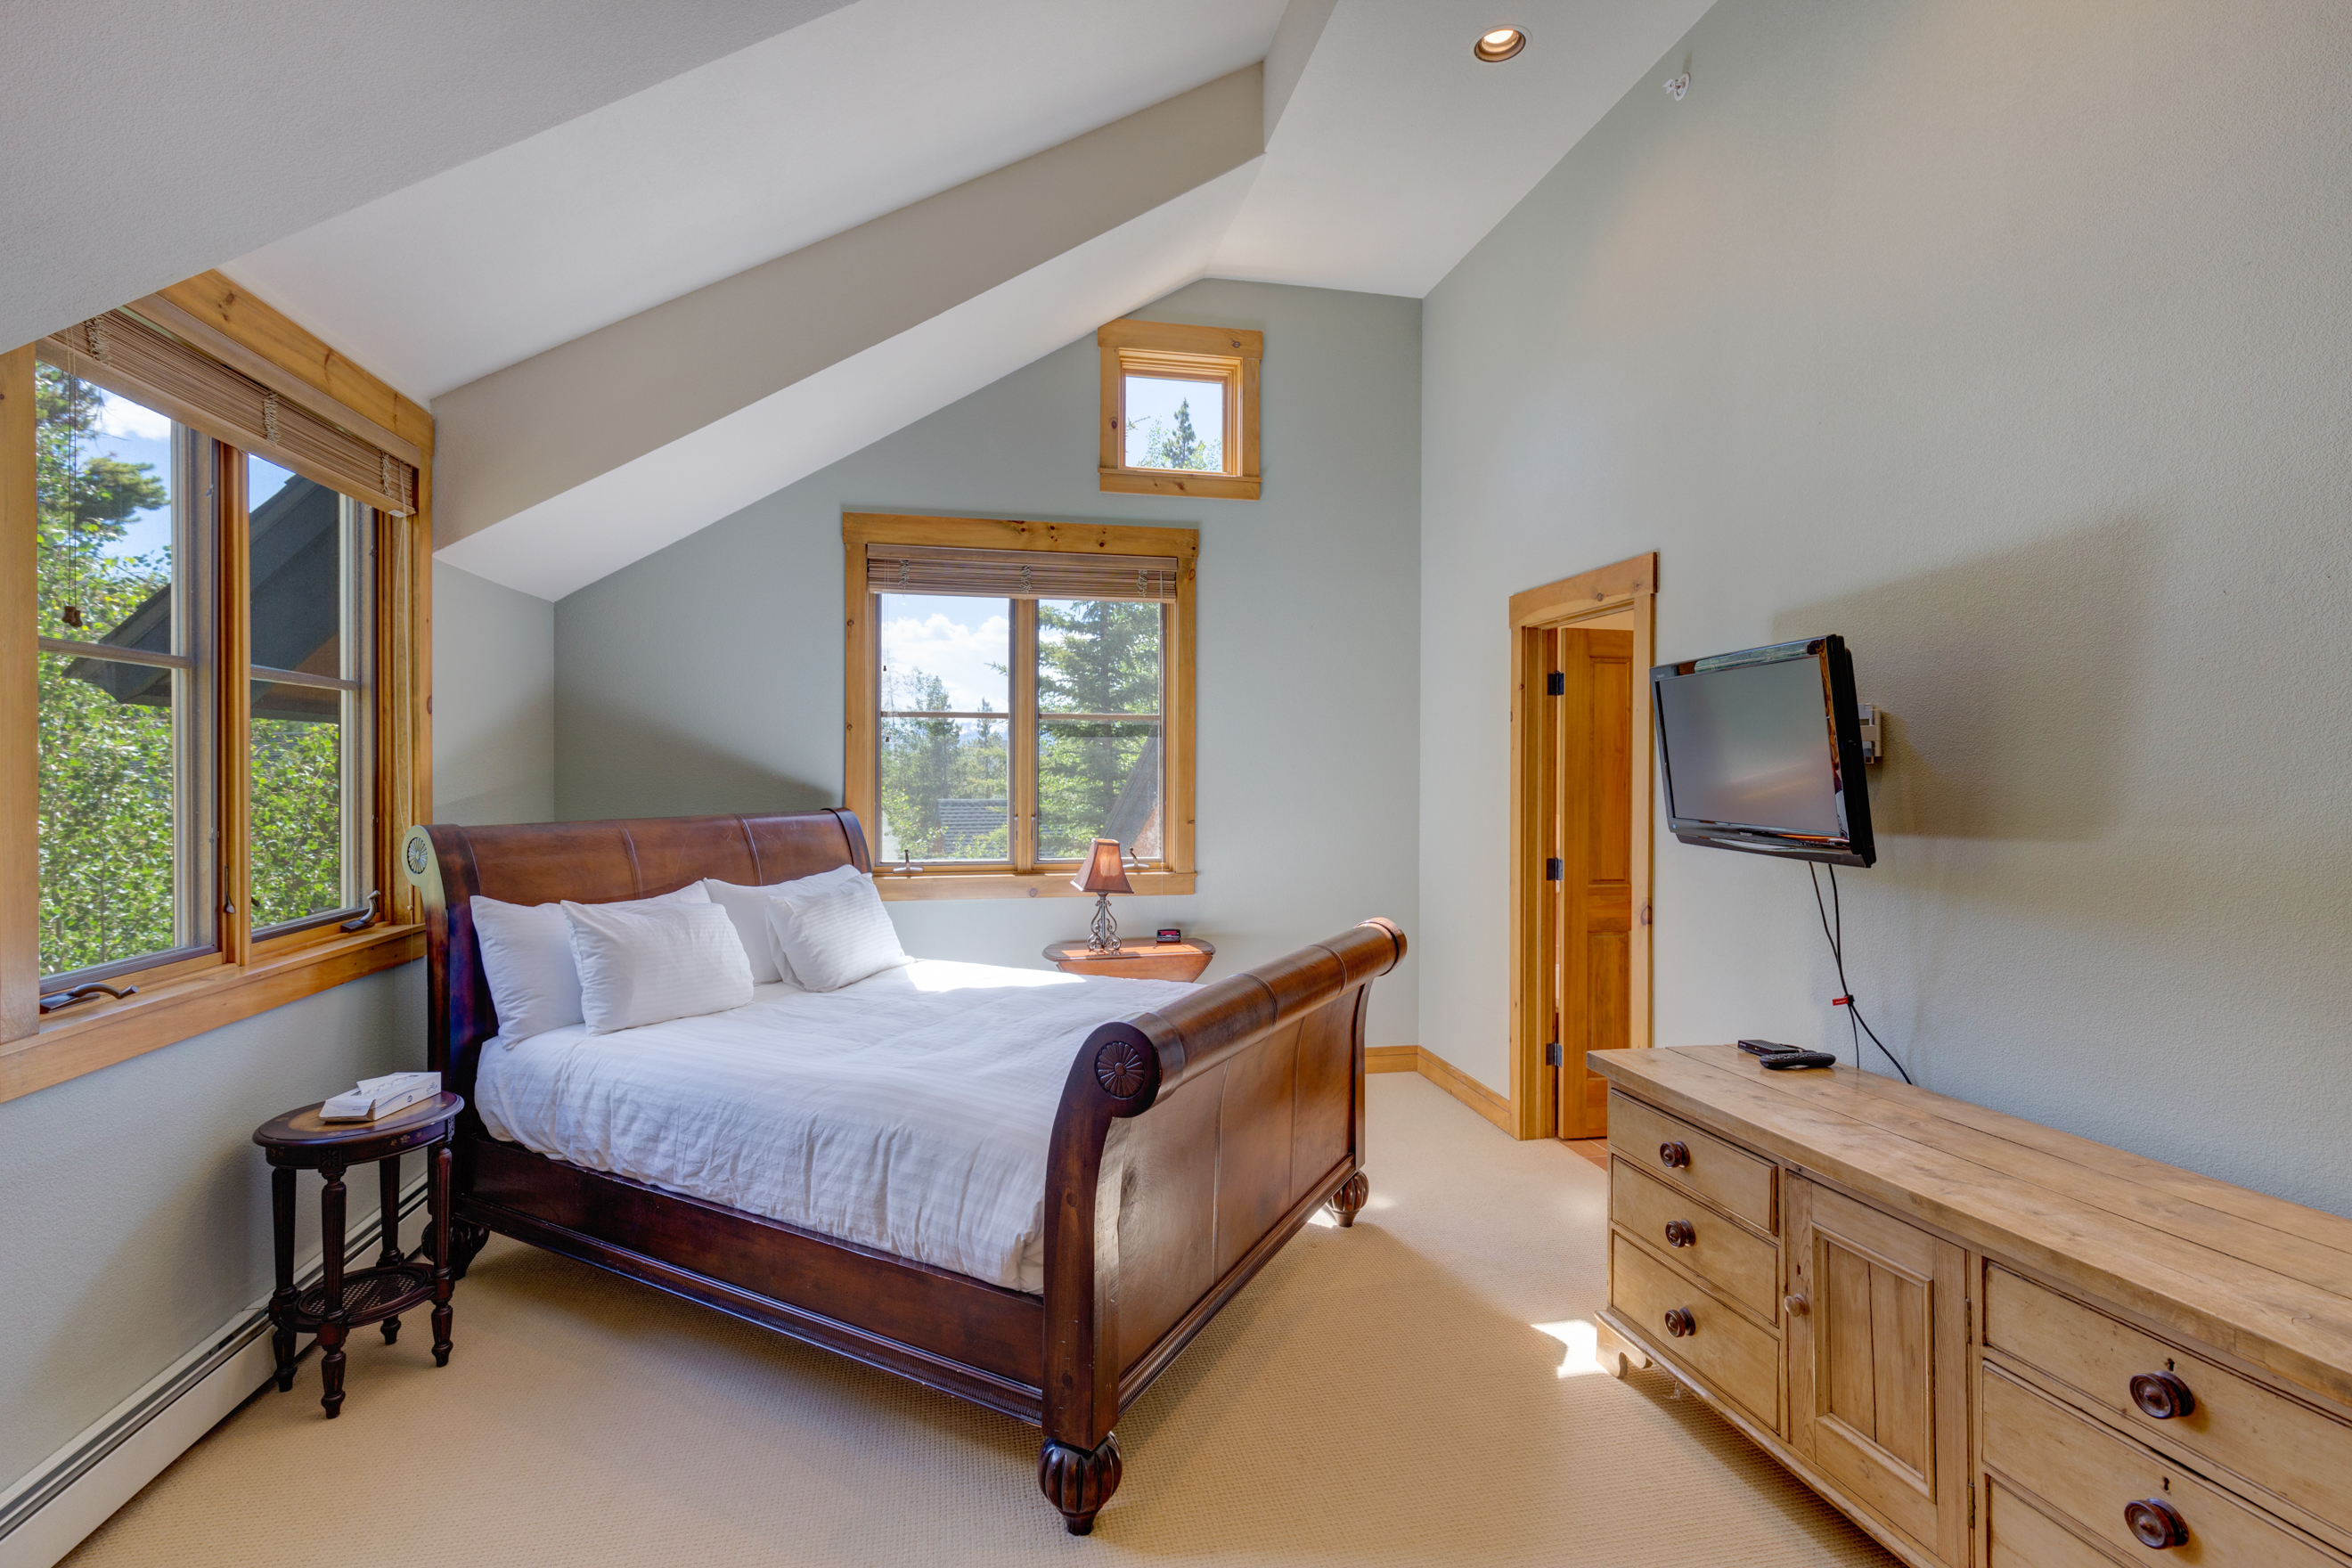 The master bedroom features a queen-sized bed and a mounted flat screen TV.